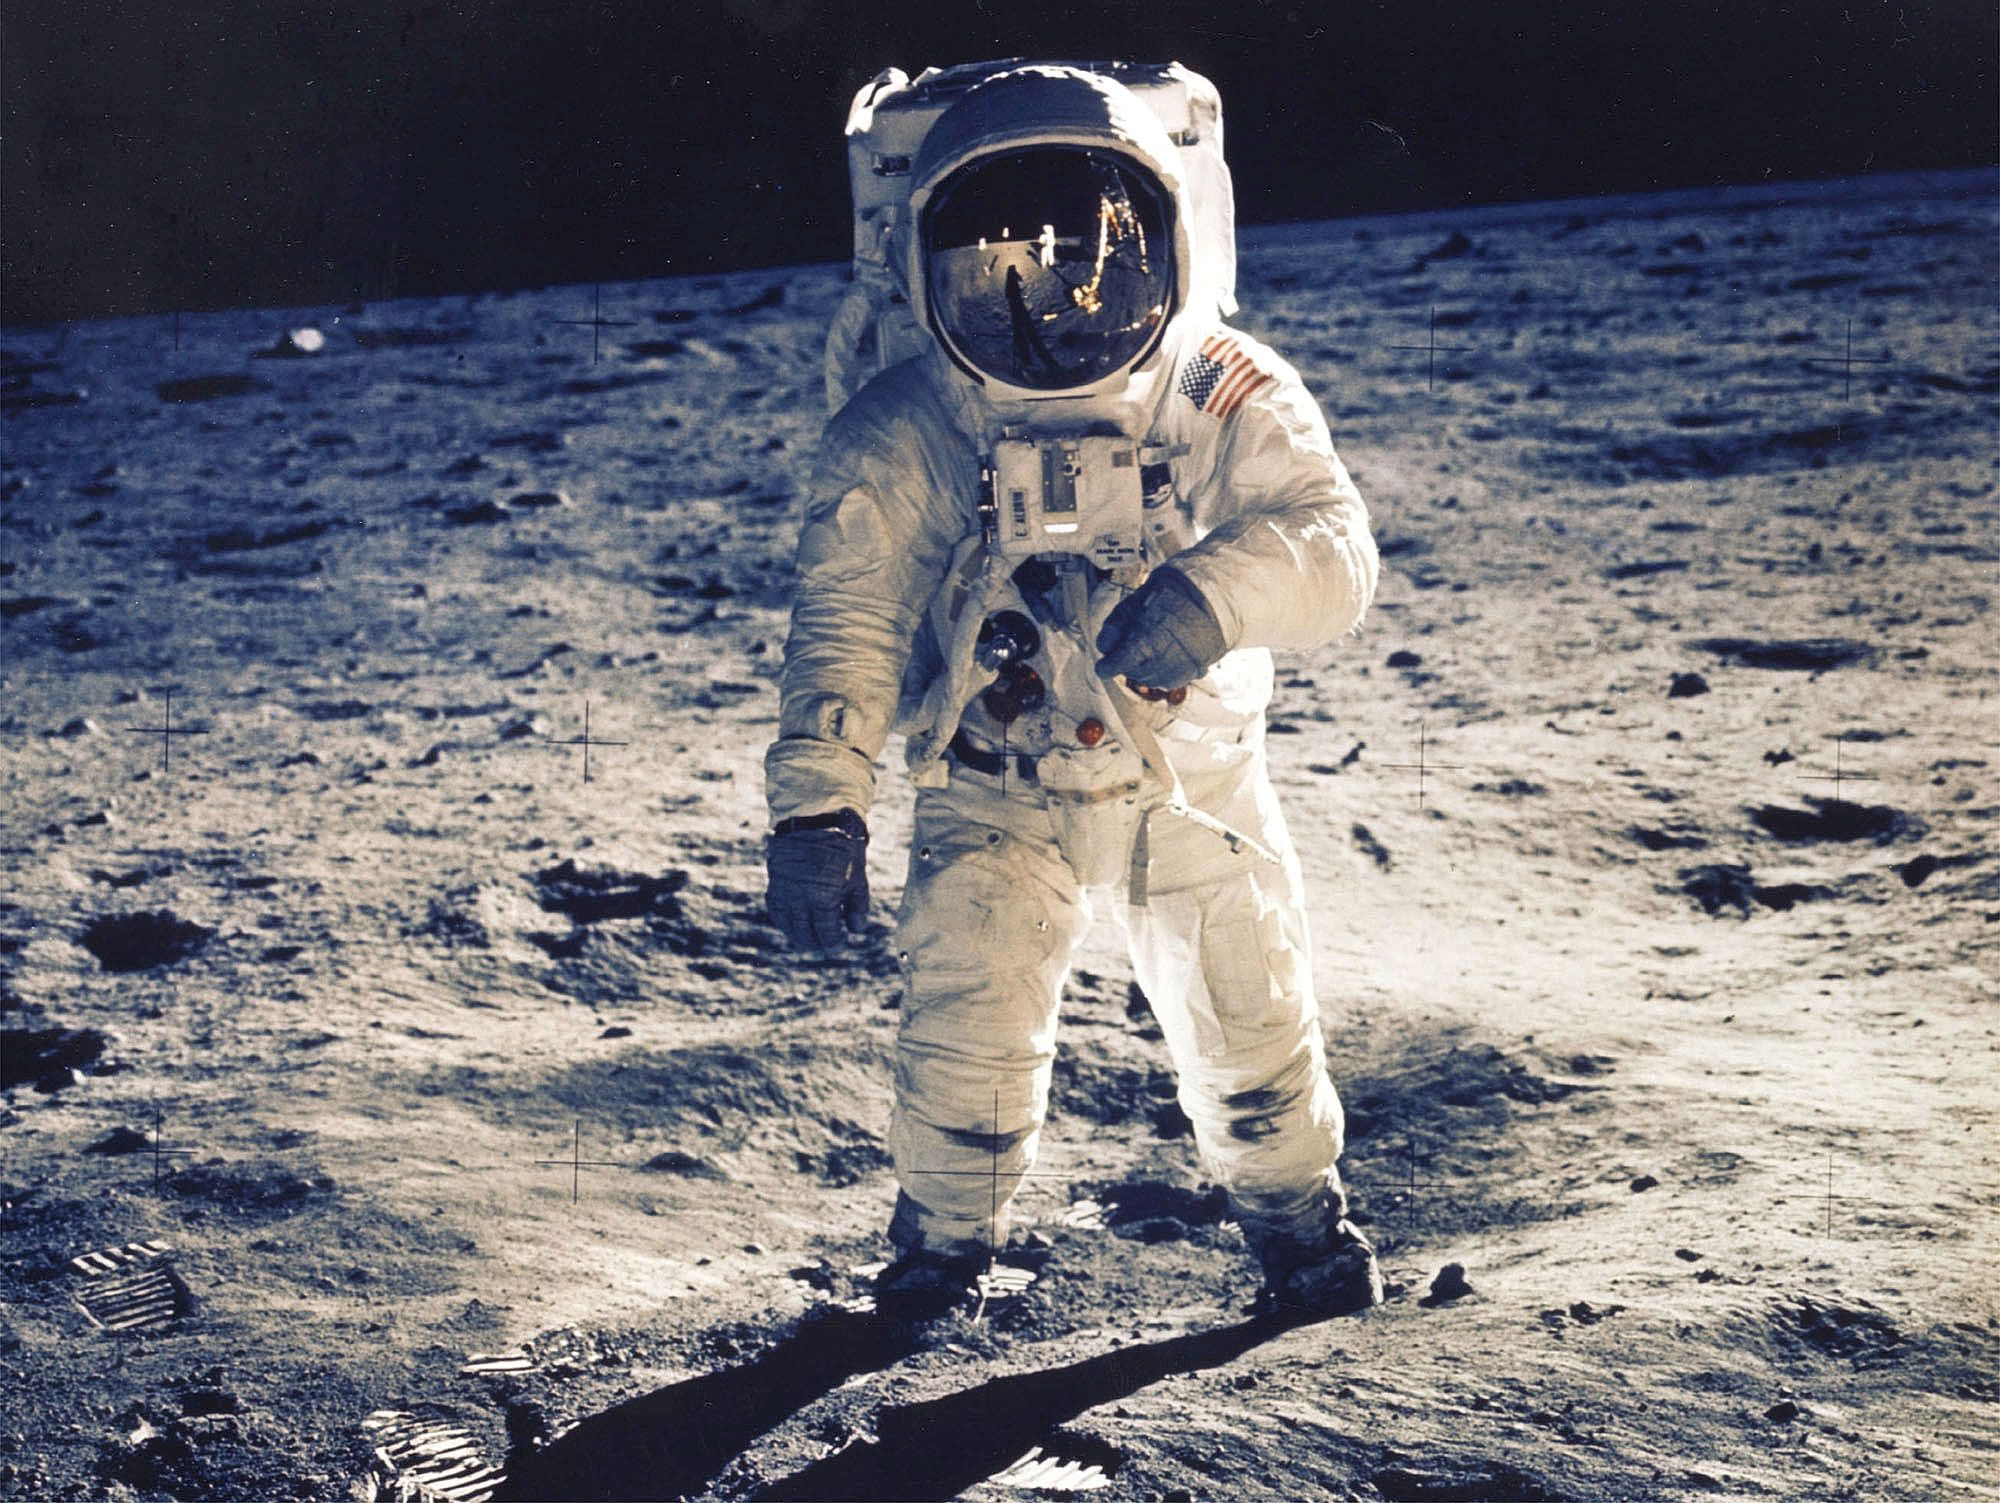 05_08_moon_astronaut_dust